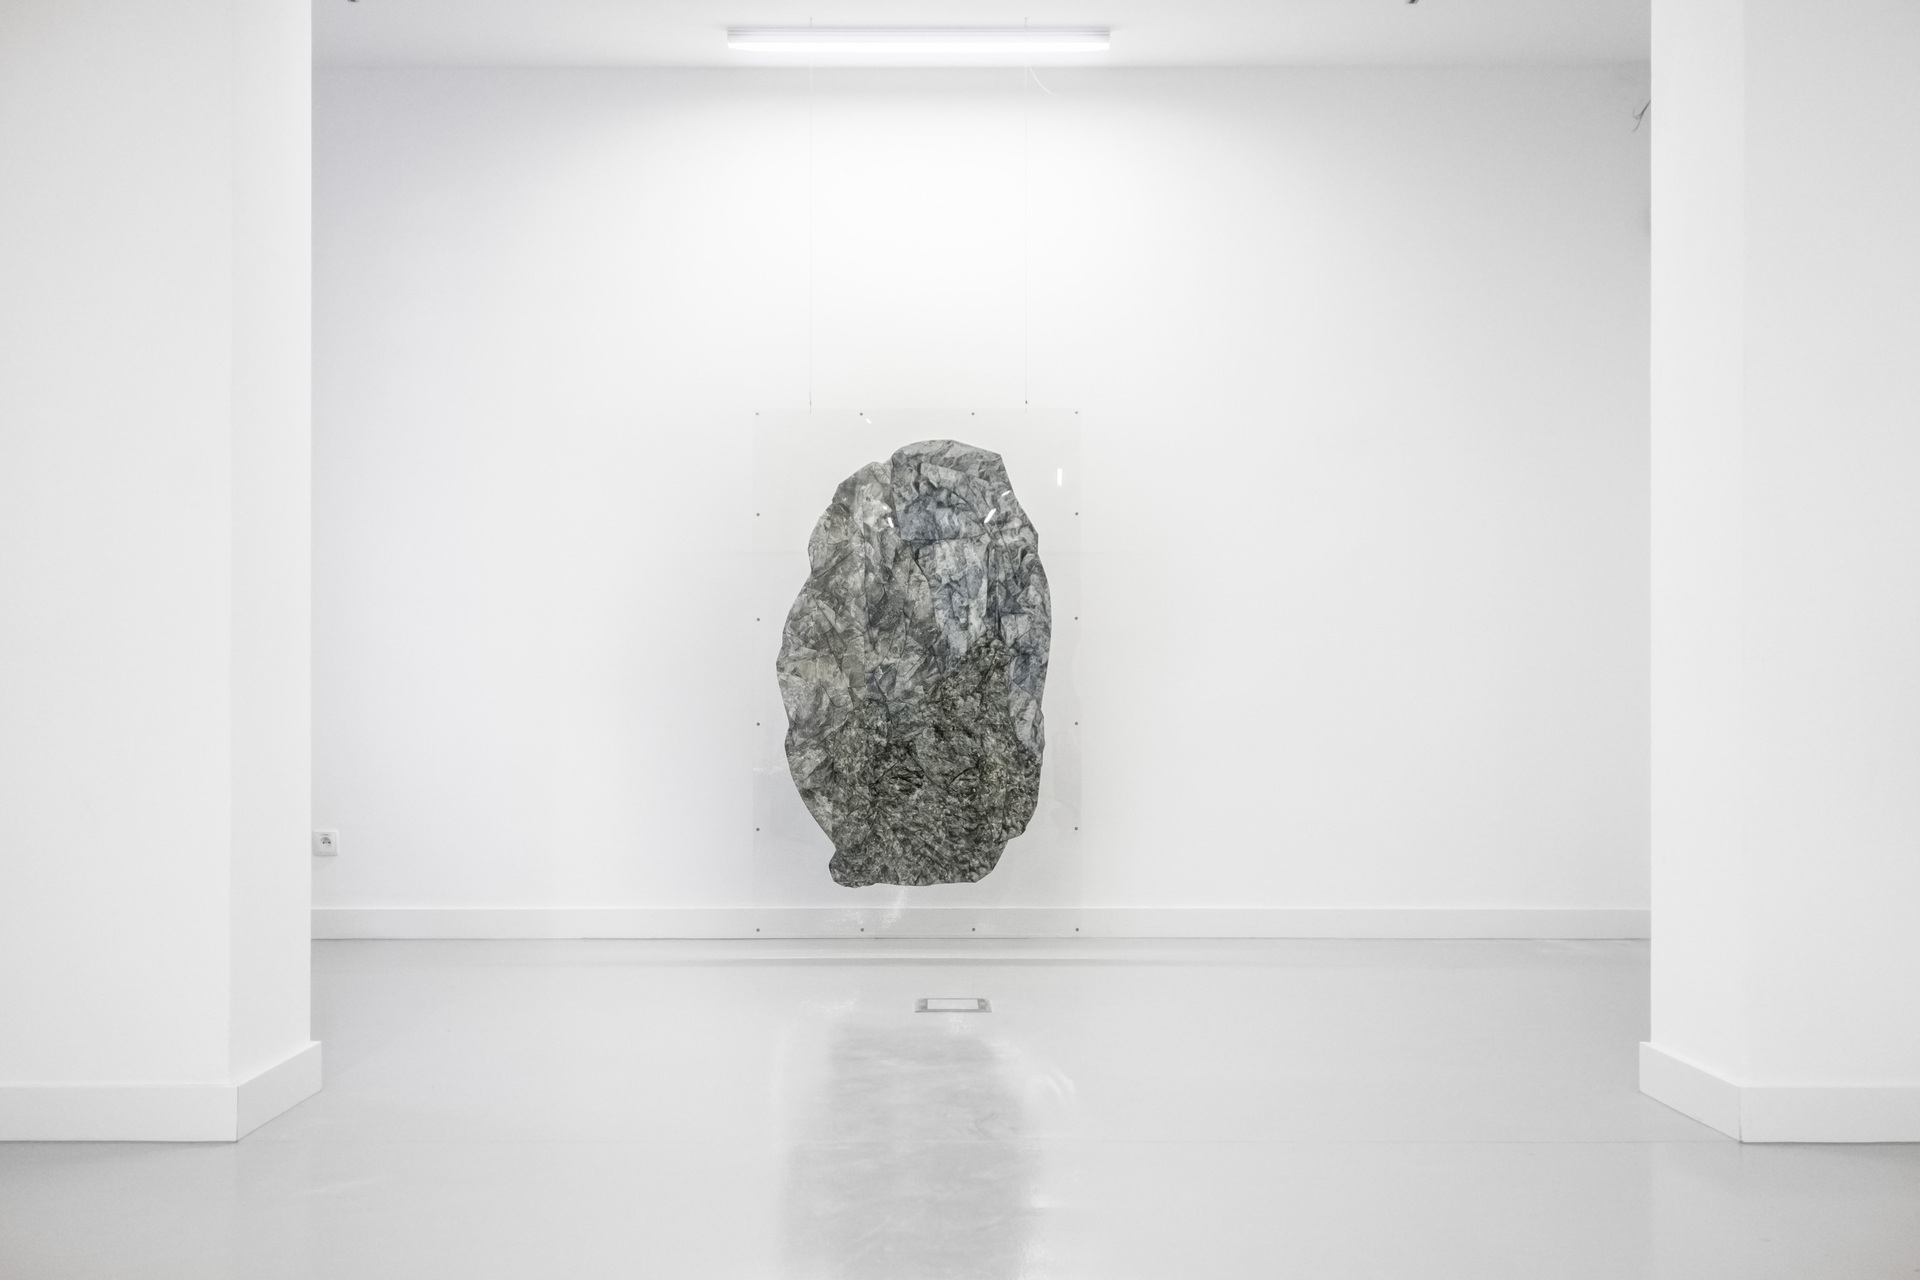 Thomas van Linge, W8 (Terra Firma), 2015, 160x100cm, exhibition view